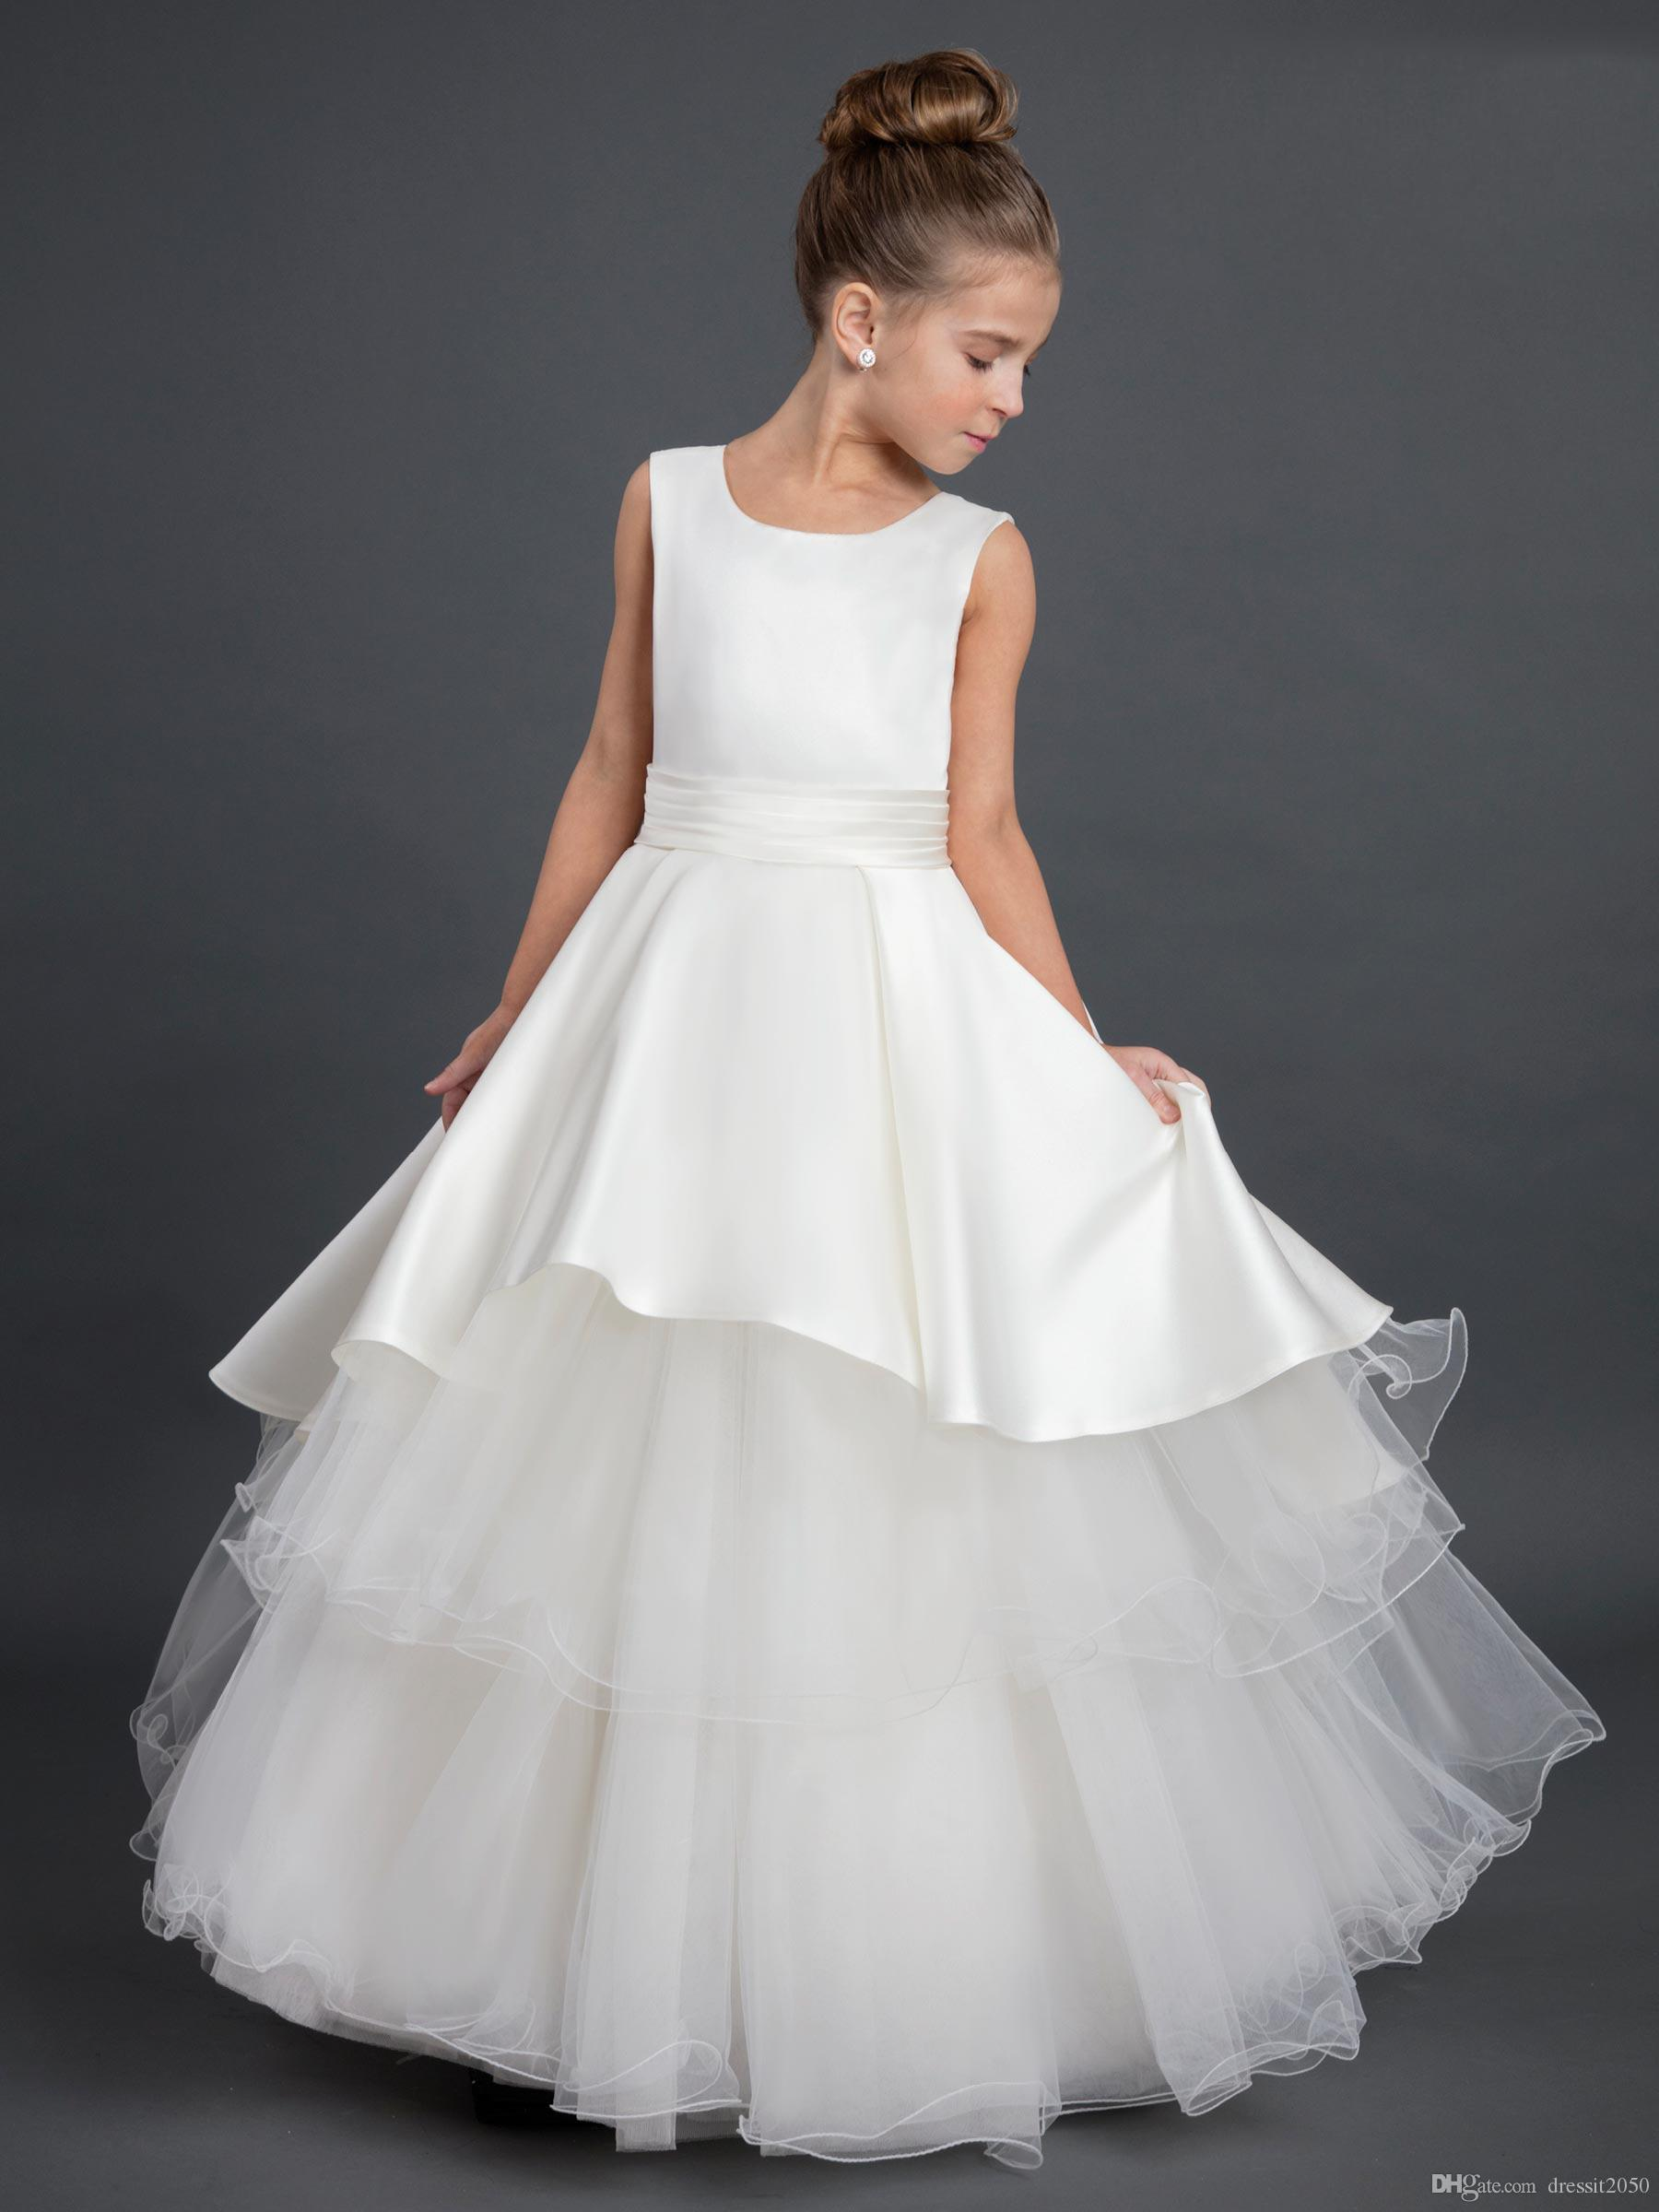 Lovely Ivory White Satin Jewel Tea Length Flower Girl Dresses Girls